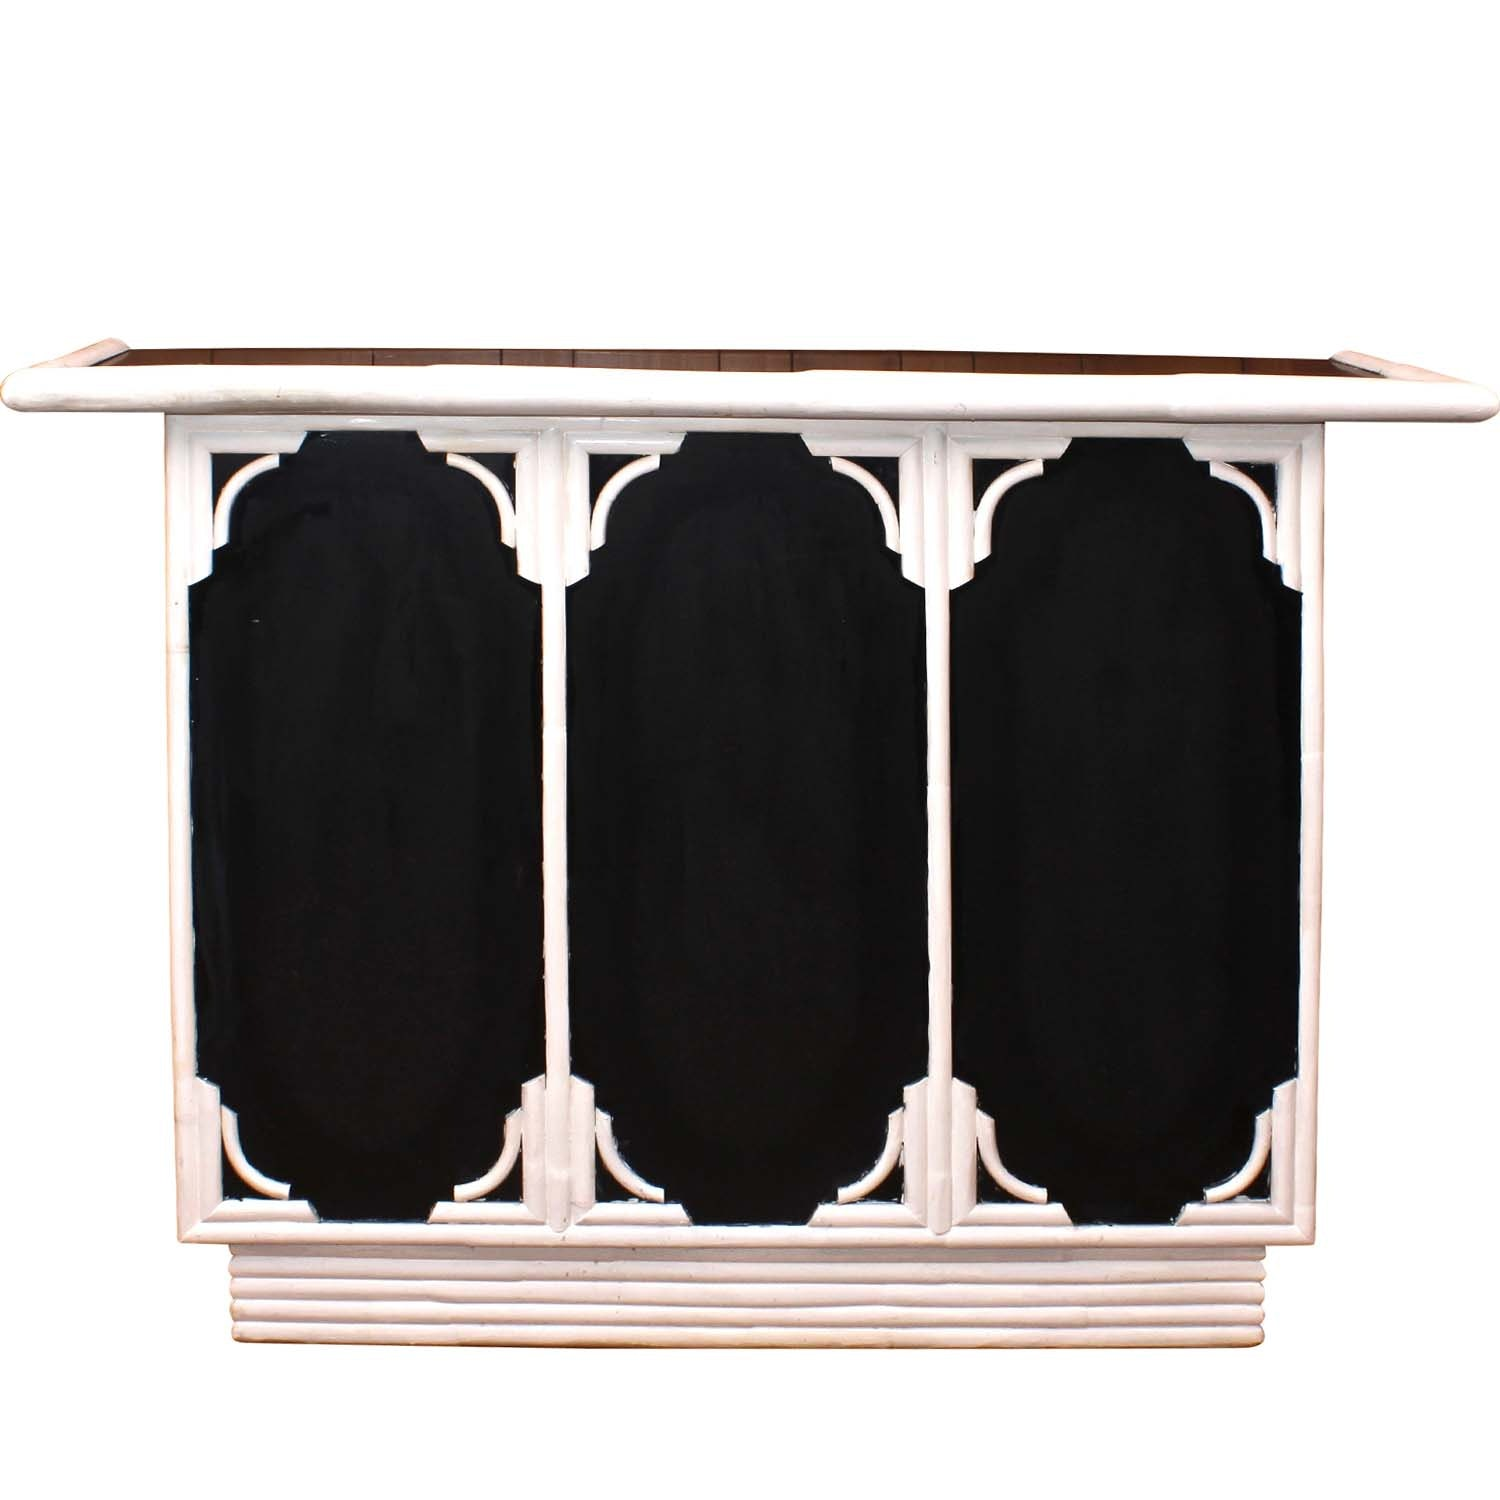 White and Black Painted Wooden Bar Cabinet, Late 20th Century